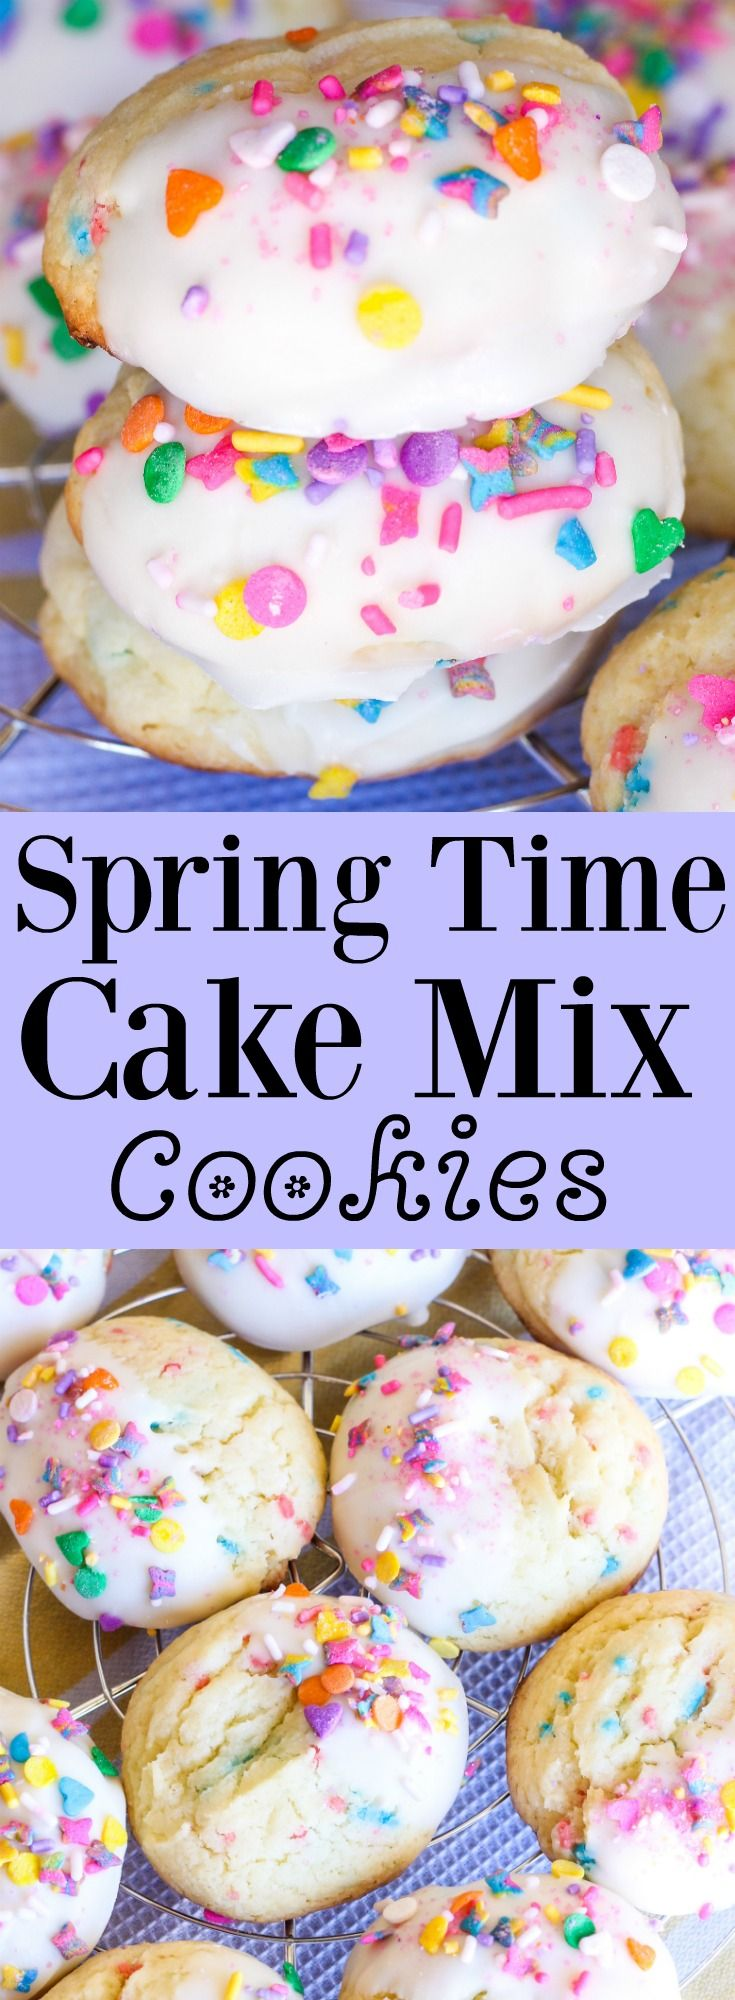 Spring Time Cake Mix Cookies// Kathryn's Kitchen Blog